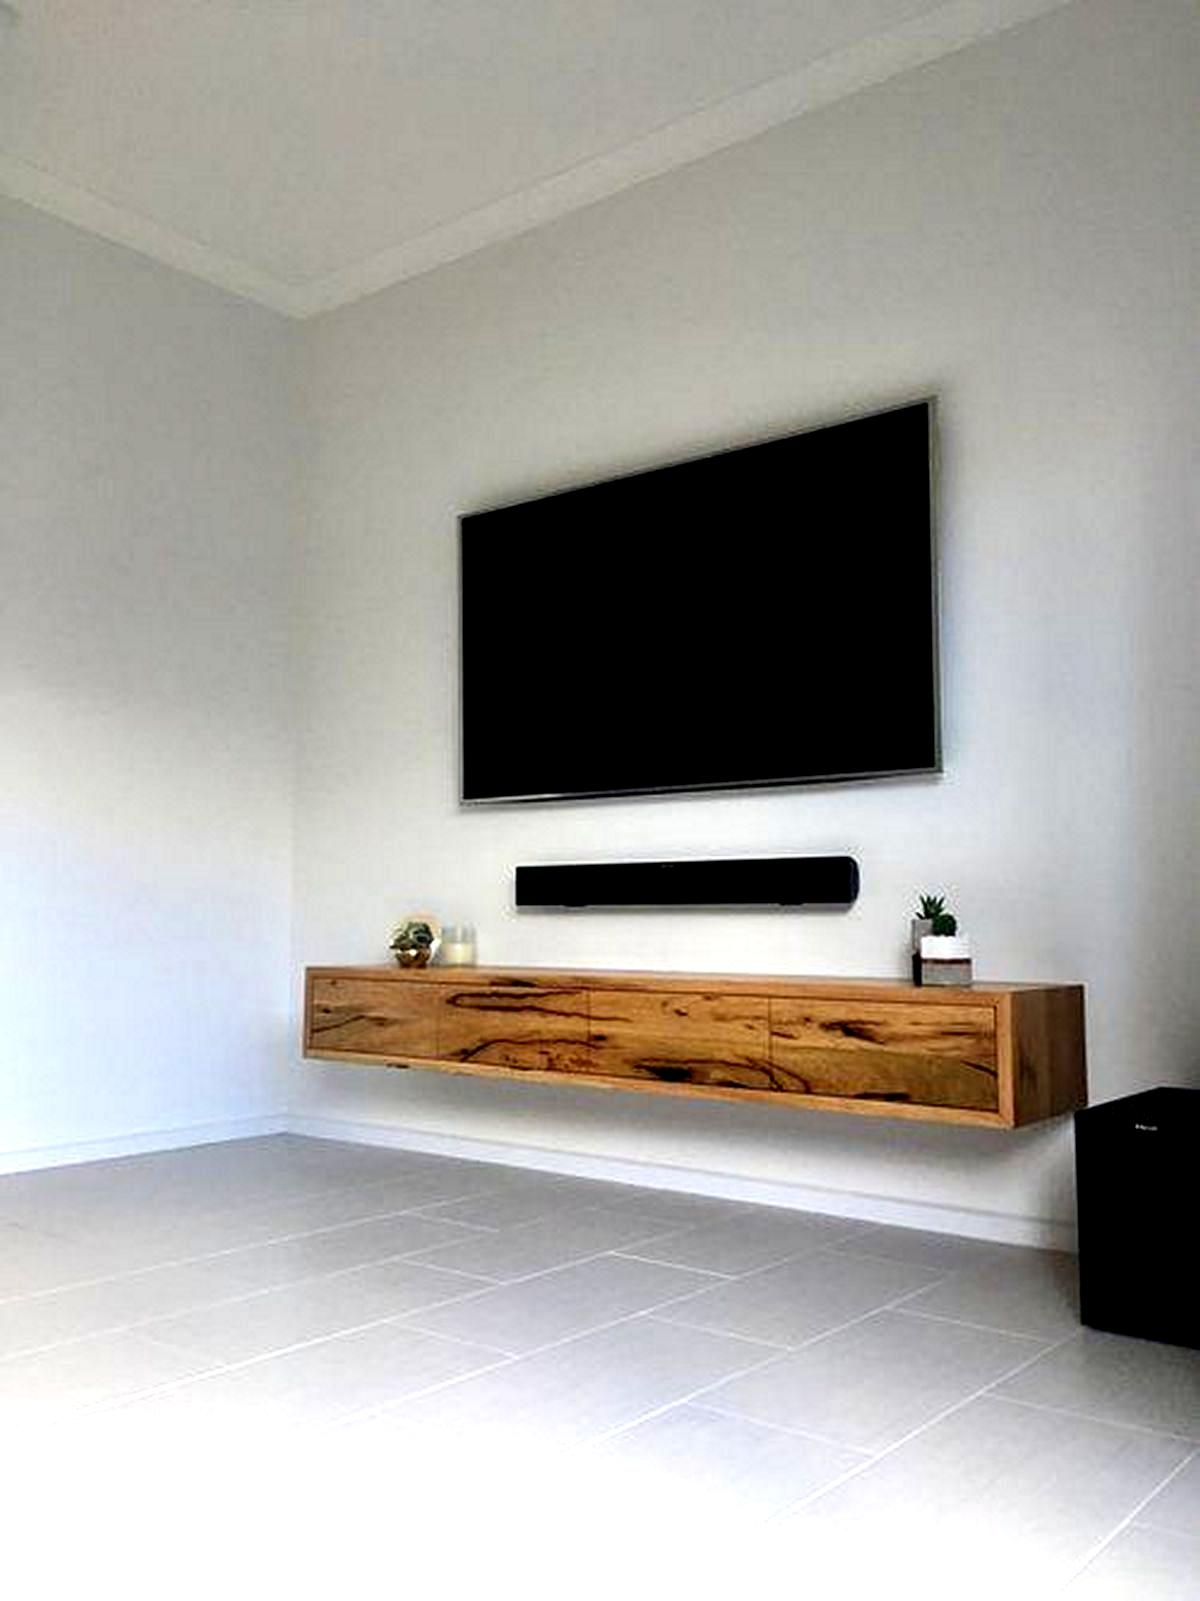 The Perfect Tv Wall Ideas That Will Not Sacrifice Your Look 05 In 2020 Living Room Tv Wall Wall Mount Tv Stand Floating Tv Shelf